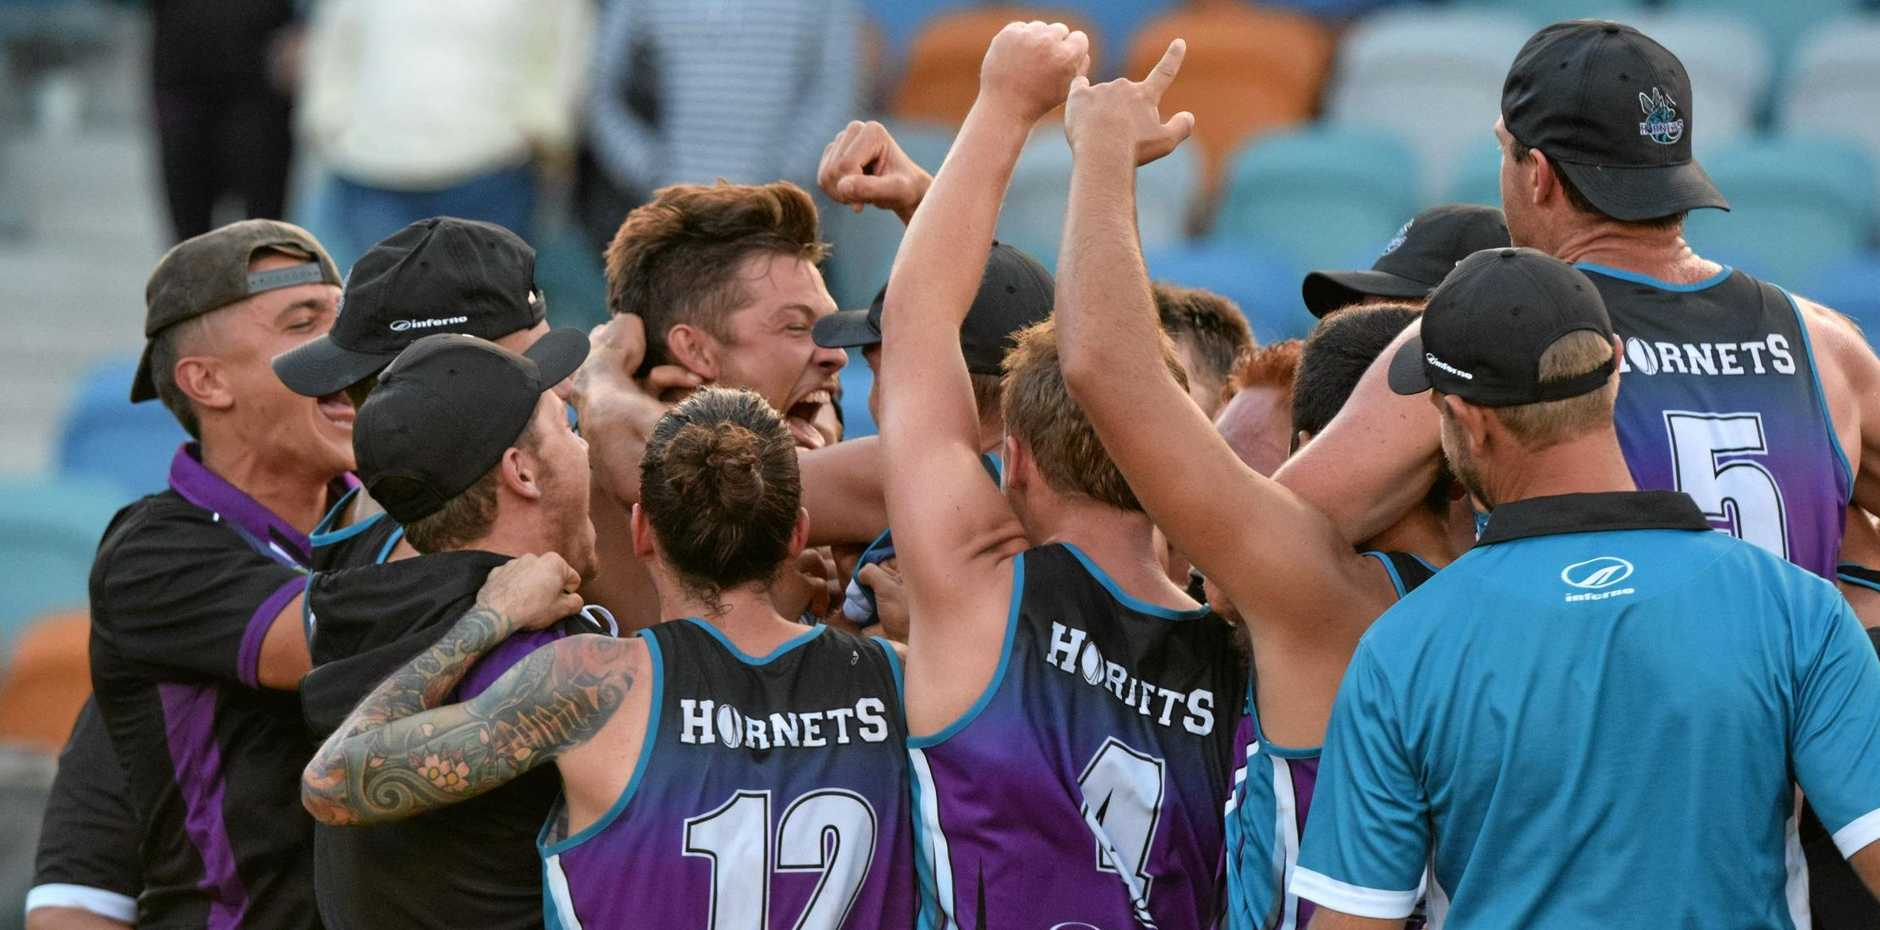 MATCH WINNER: The Hunter Western Hornets celebrate after their match winning try to defeat the Central Queensland Bulls in a thrilling National Touch League open men's grand final on Saturday at the C.ex Coffs International Stadium.